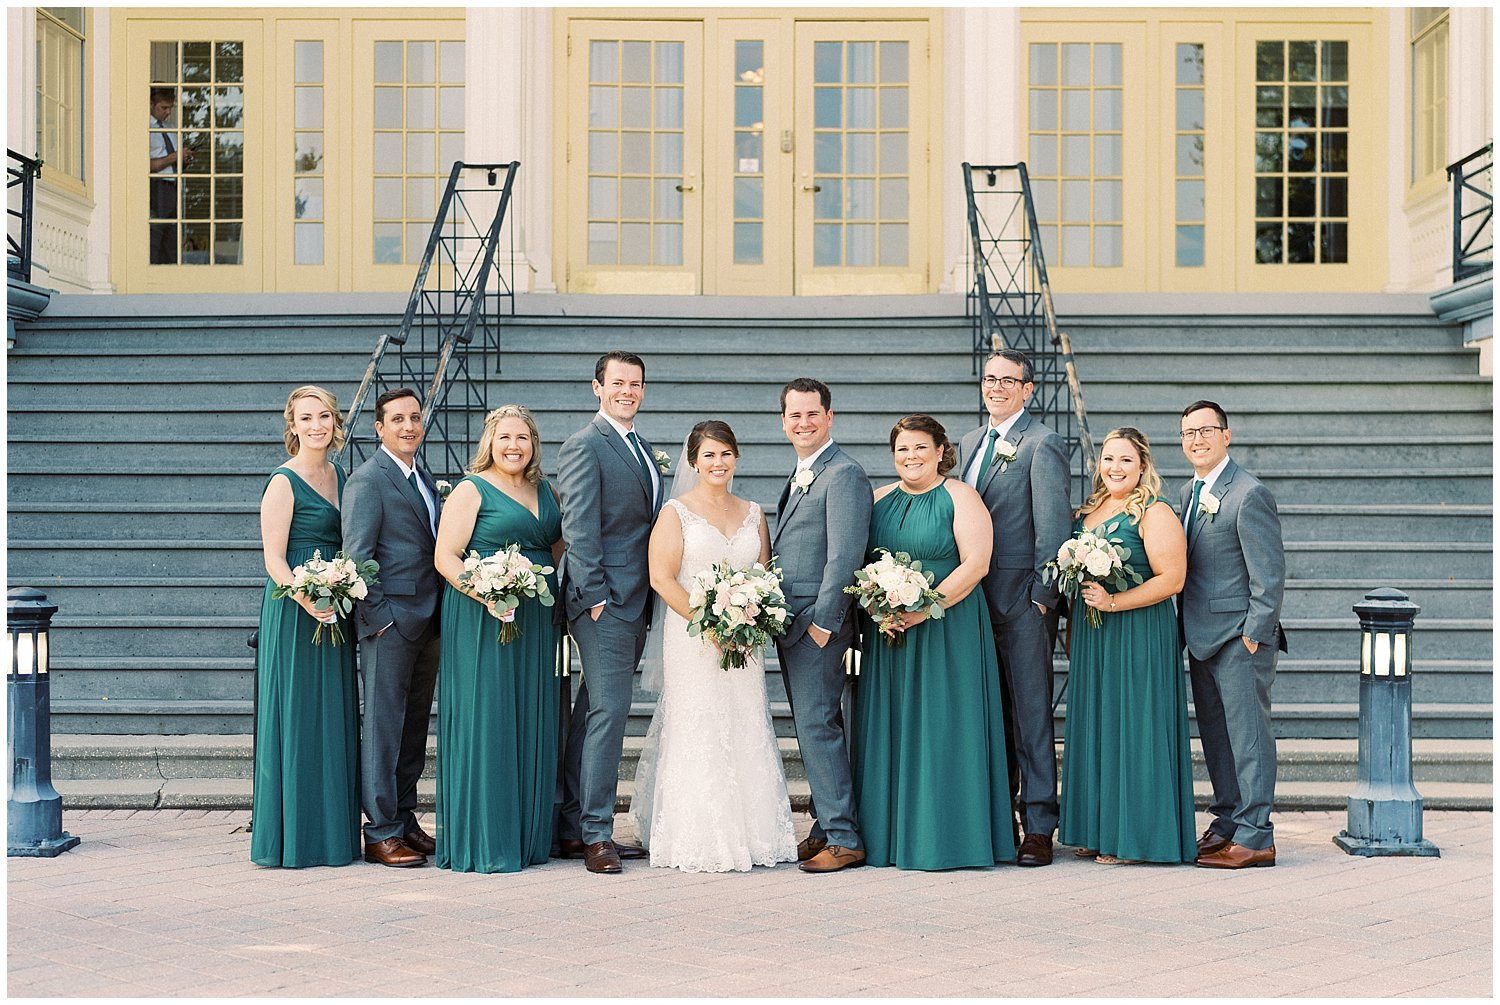 Wedding party photos at Maryland Zoo mansion house